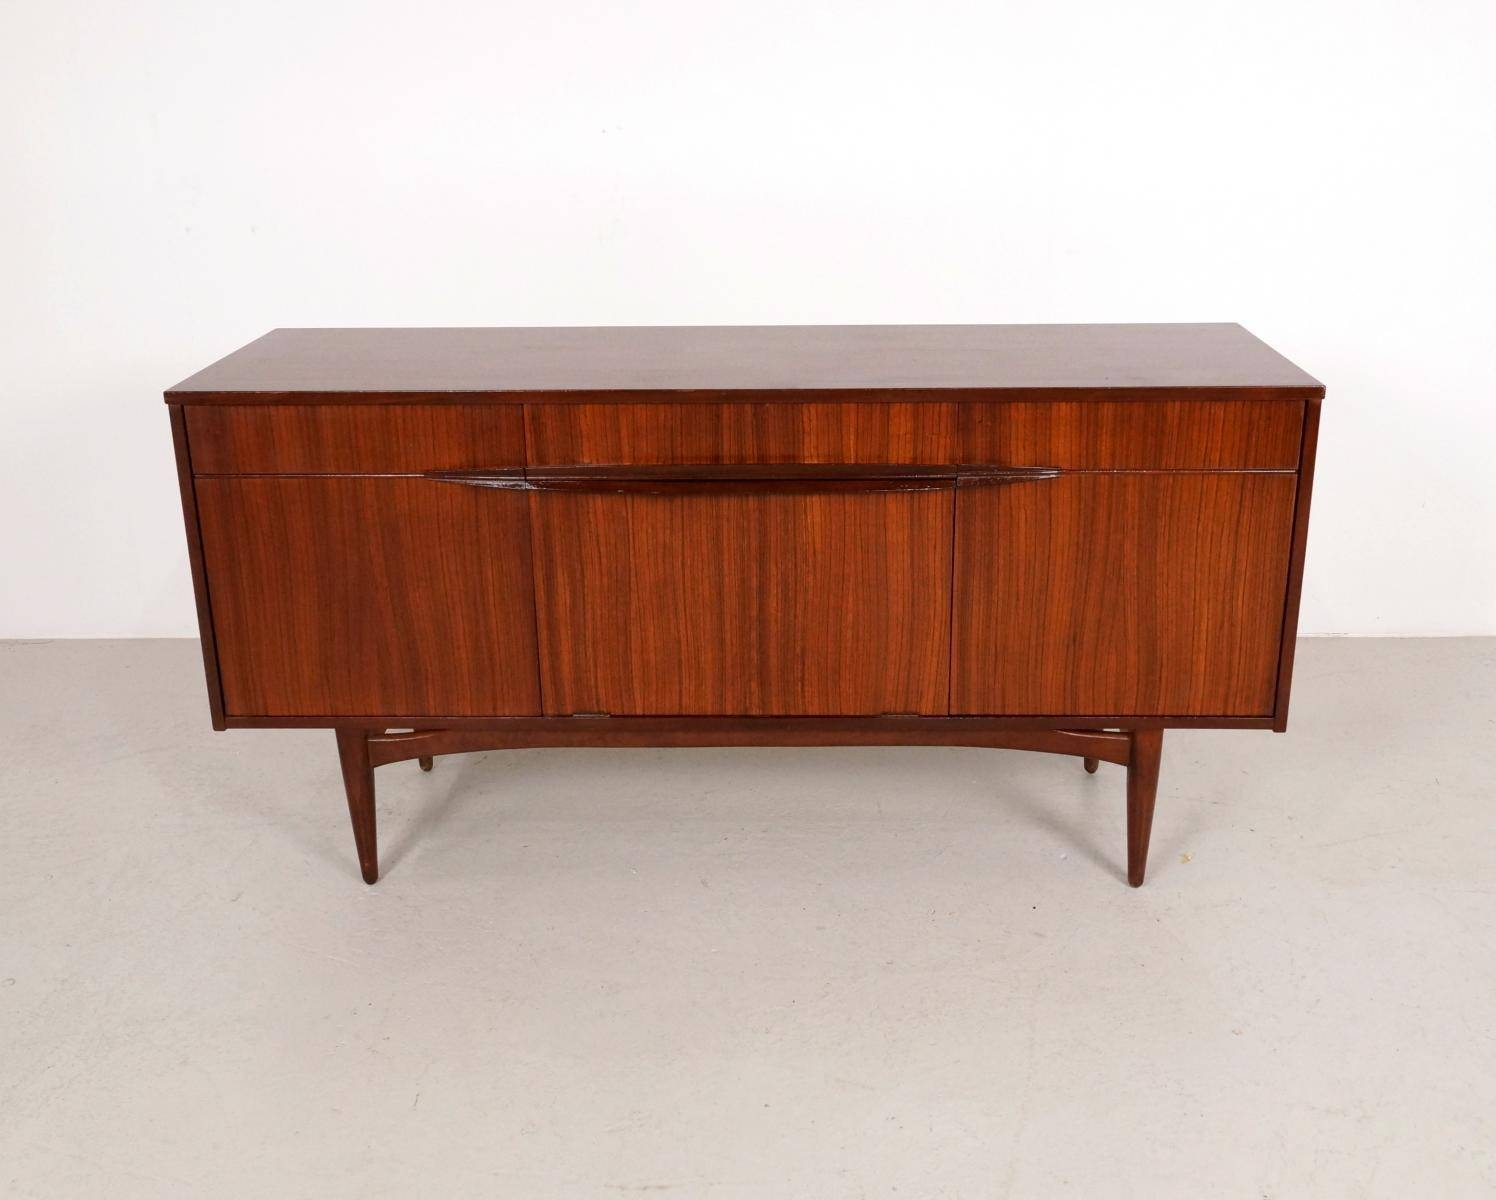 Mid Century Sideboard In Dark Teak, 1960S For Sale At Pamono Inside Mid Century Sideboards (#10 of 15)